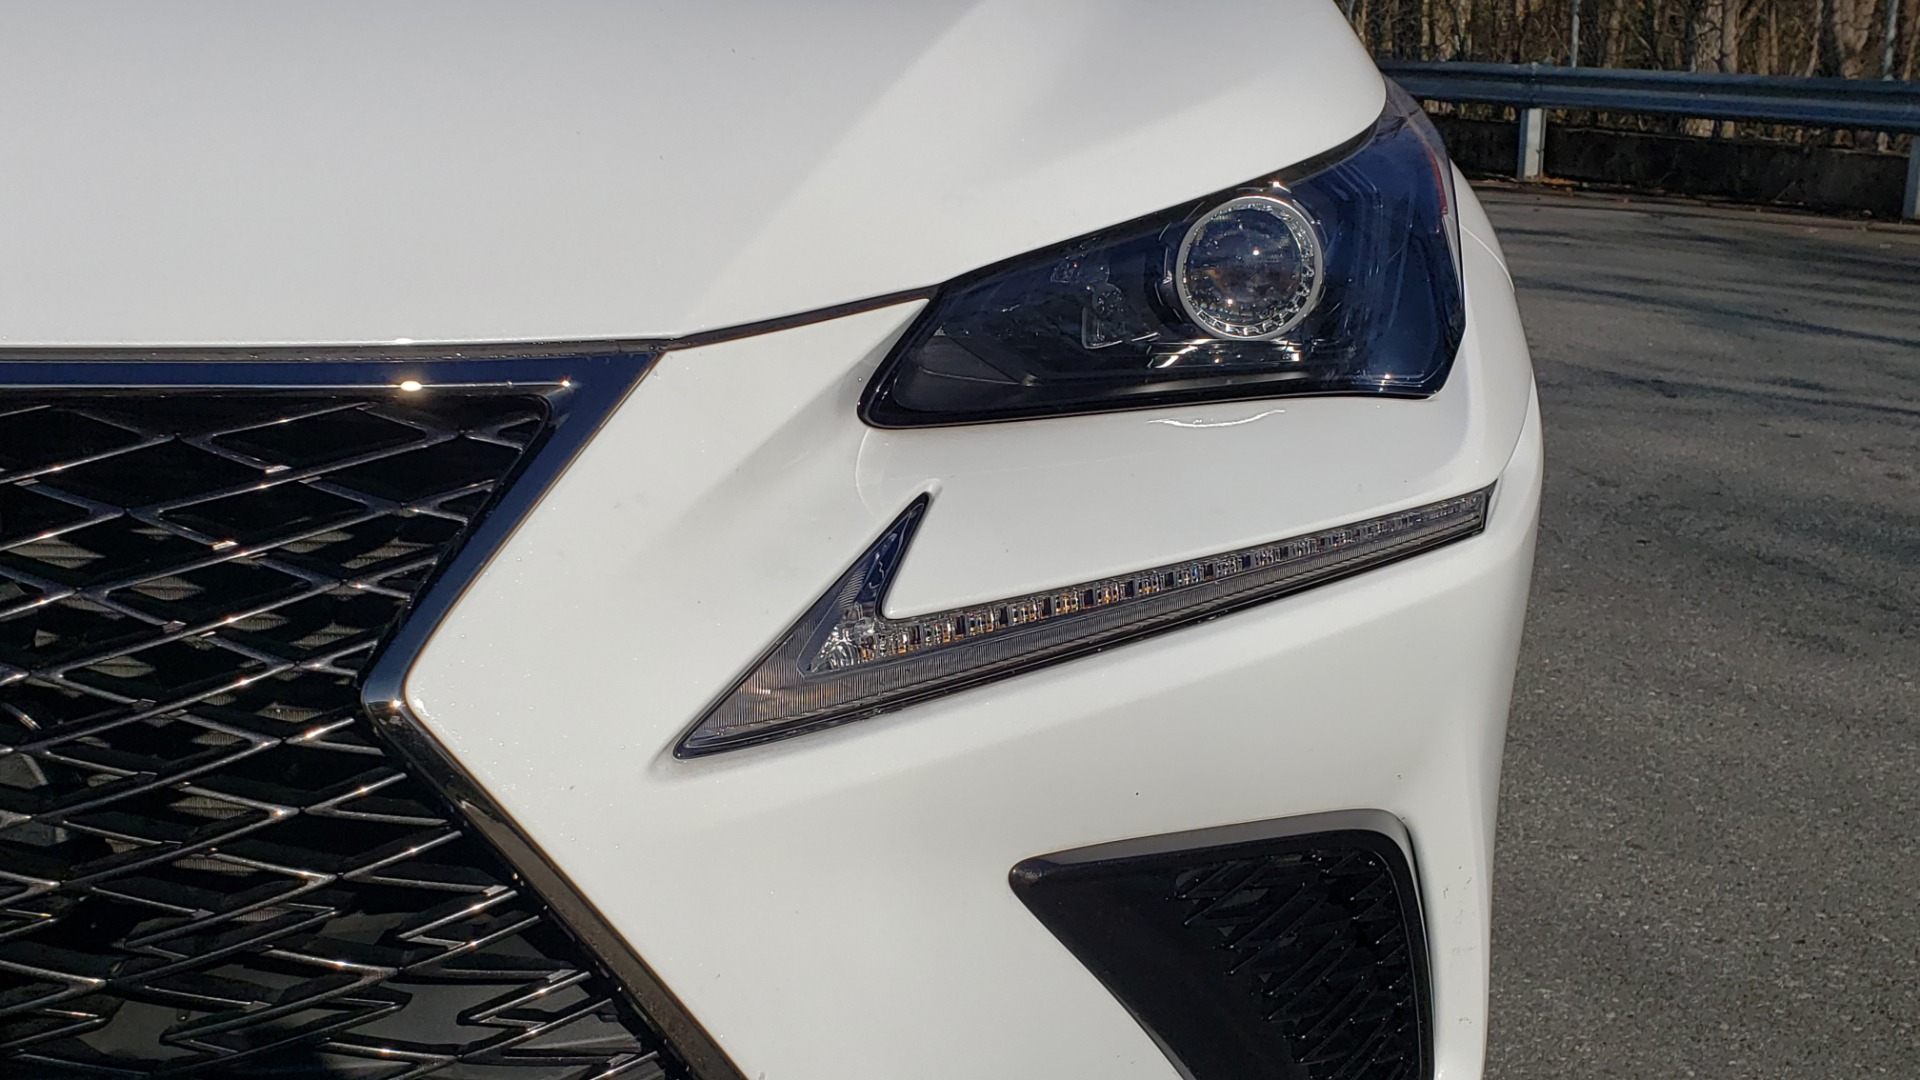 Used 2019 Lexus NX 300 F-SPORT / 2.0L TURBO / LEATHER / 18IN WHEELS / REARVIEW for sale Sold at Formula Imports in Charlotte NC 28227 27